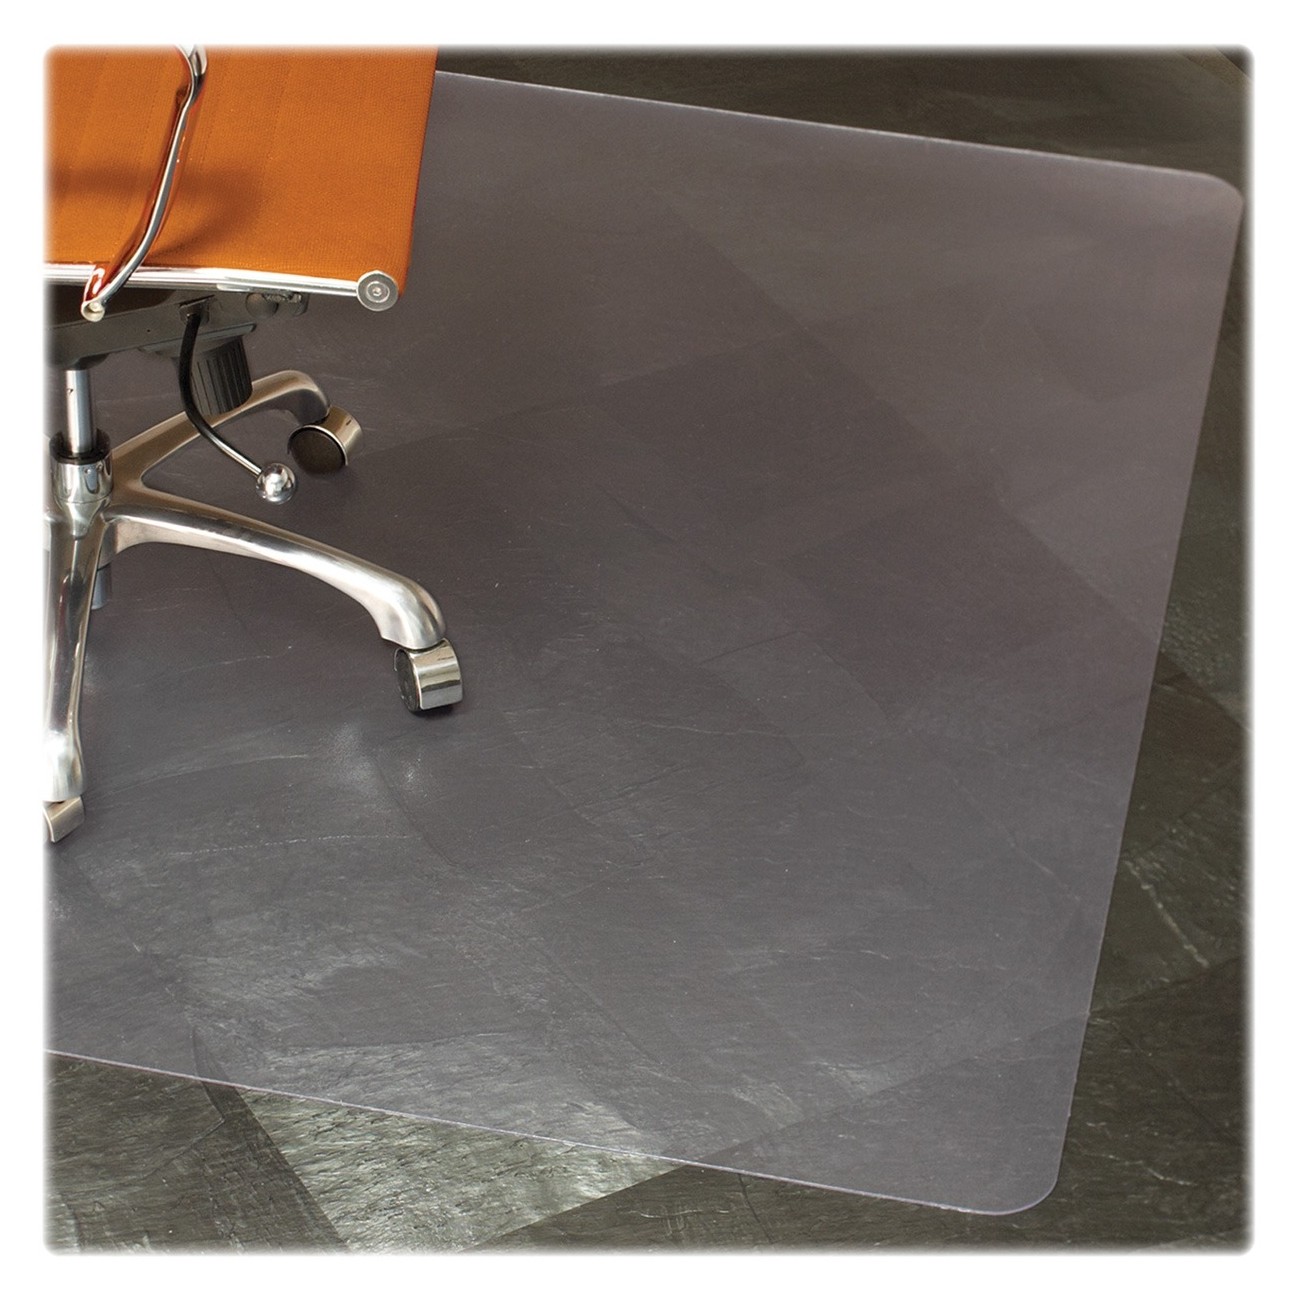 Natural Origins Hard Floor Chairmat